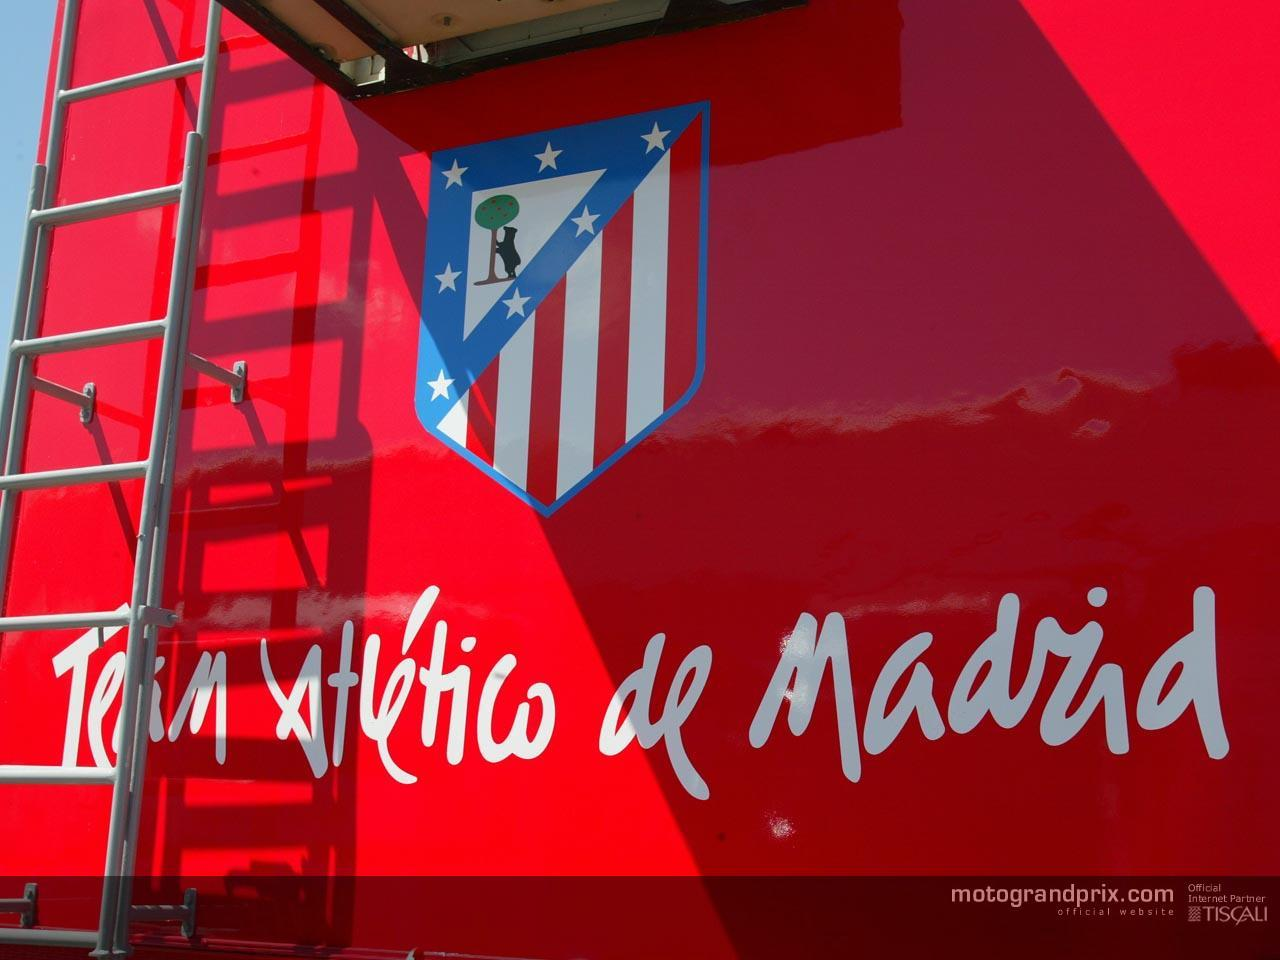 atleticomadridwallpaper.jpg